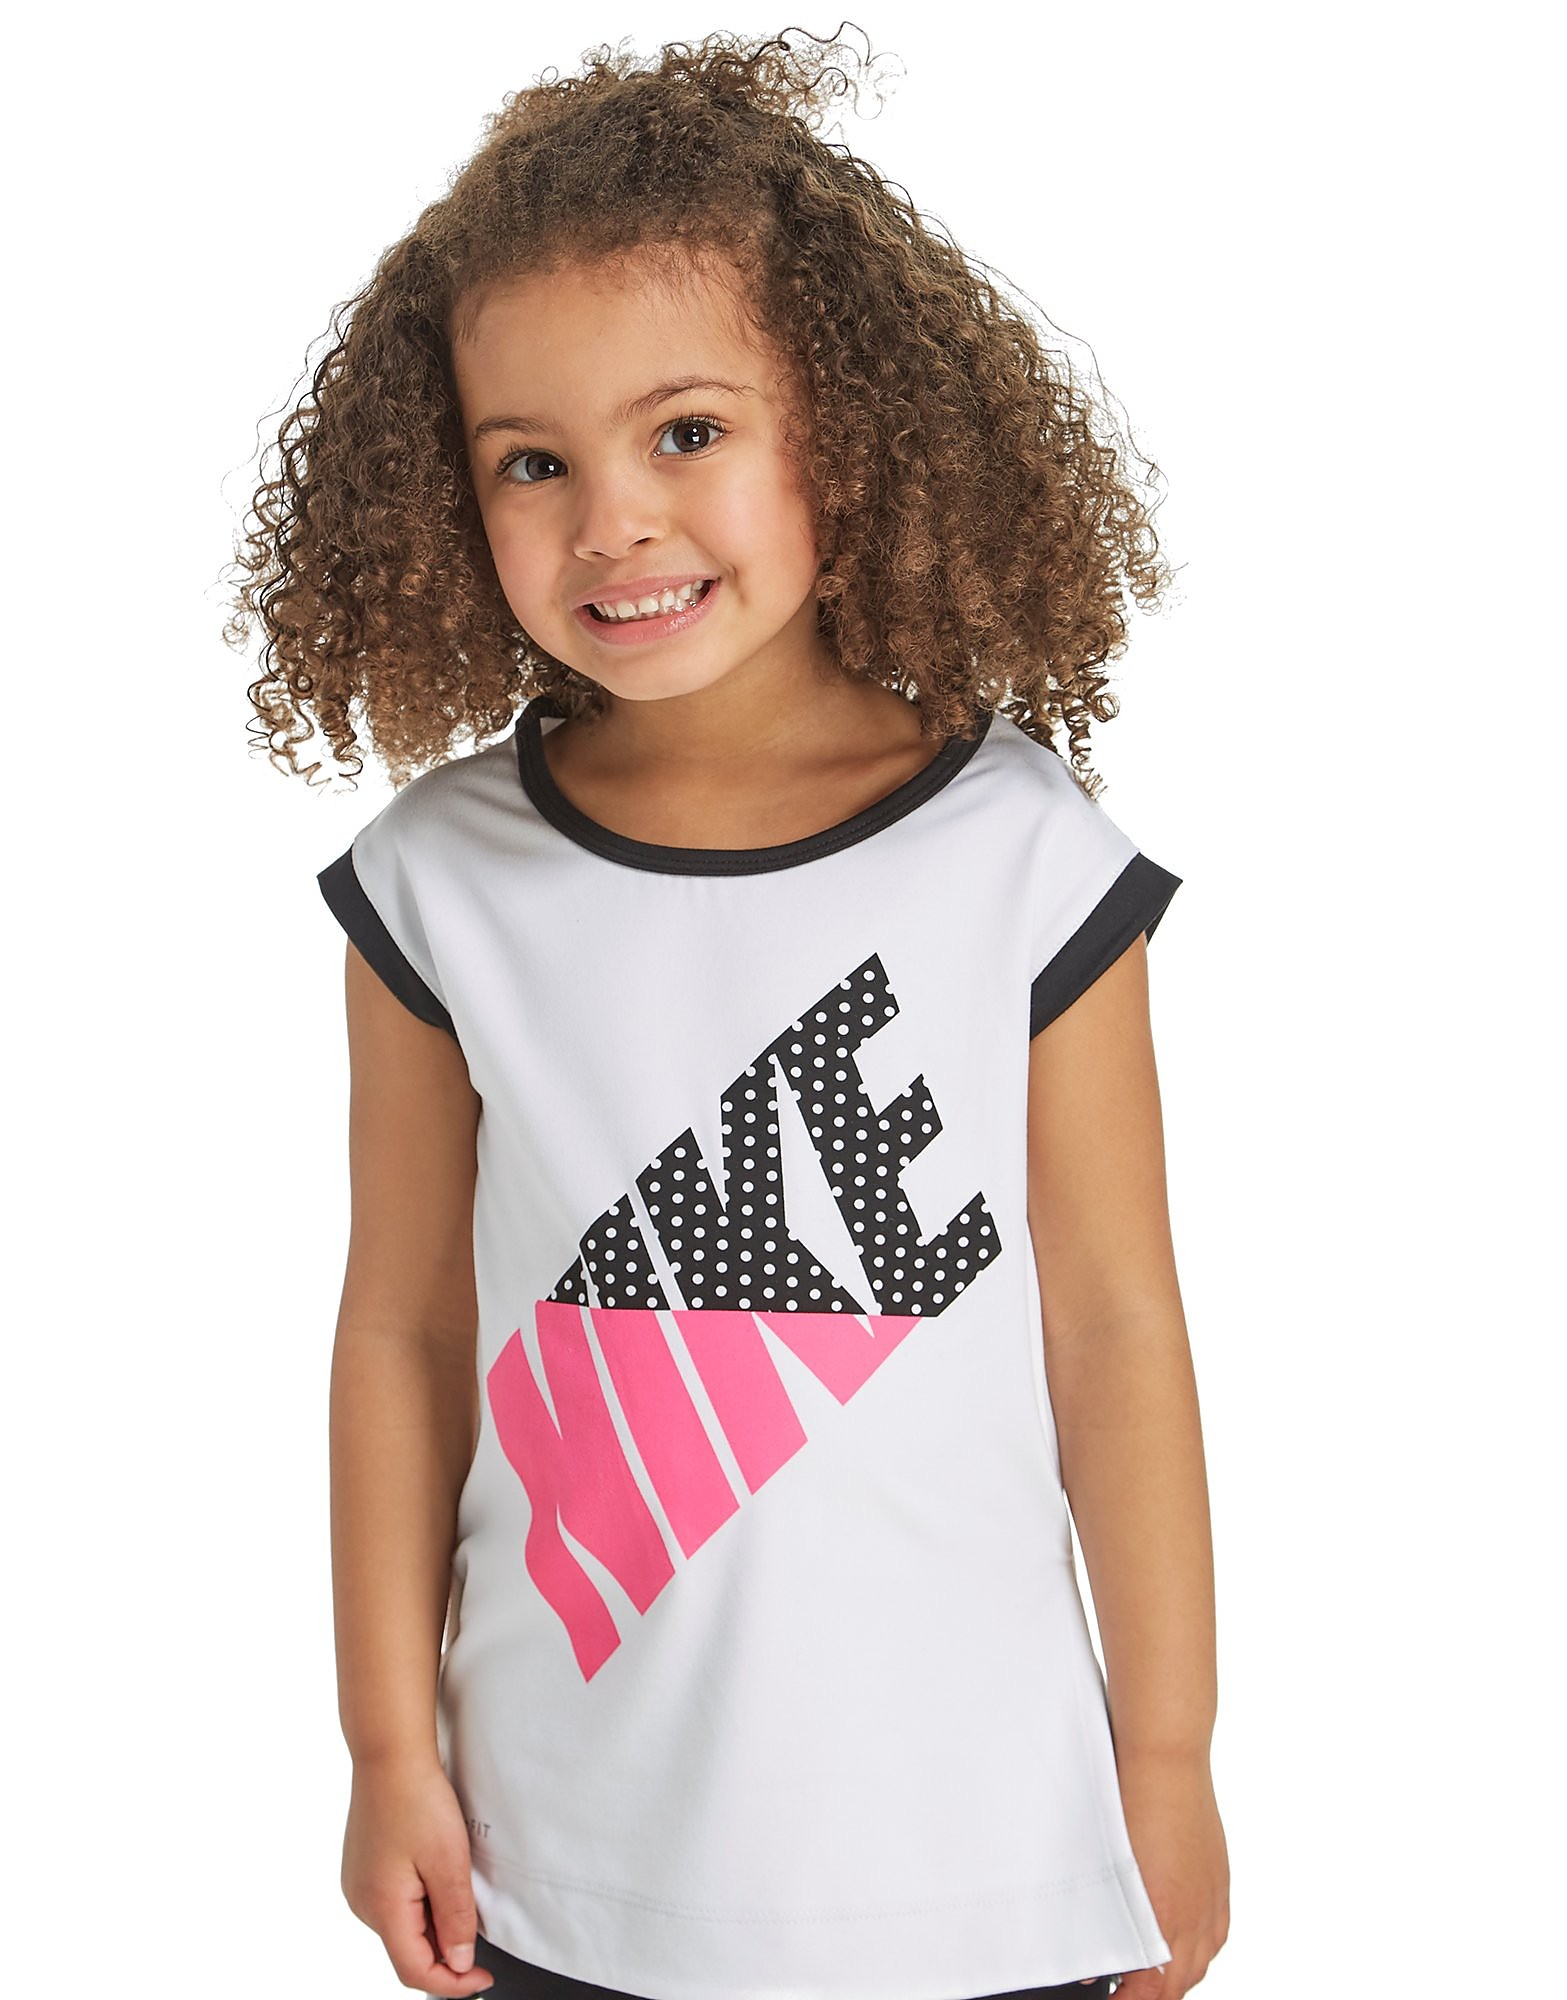 Nike Girls' Tunic T-Shirt Children